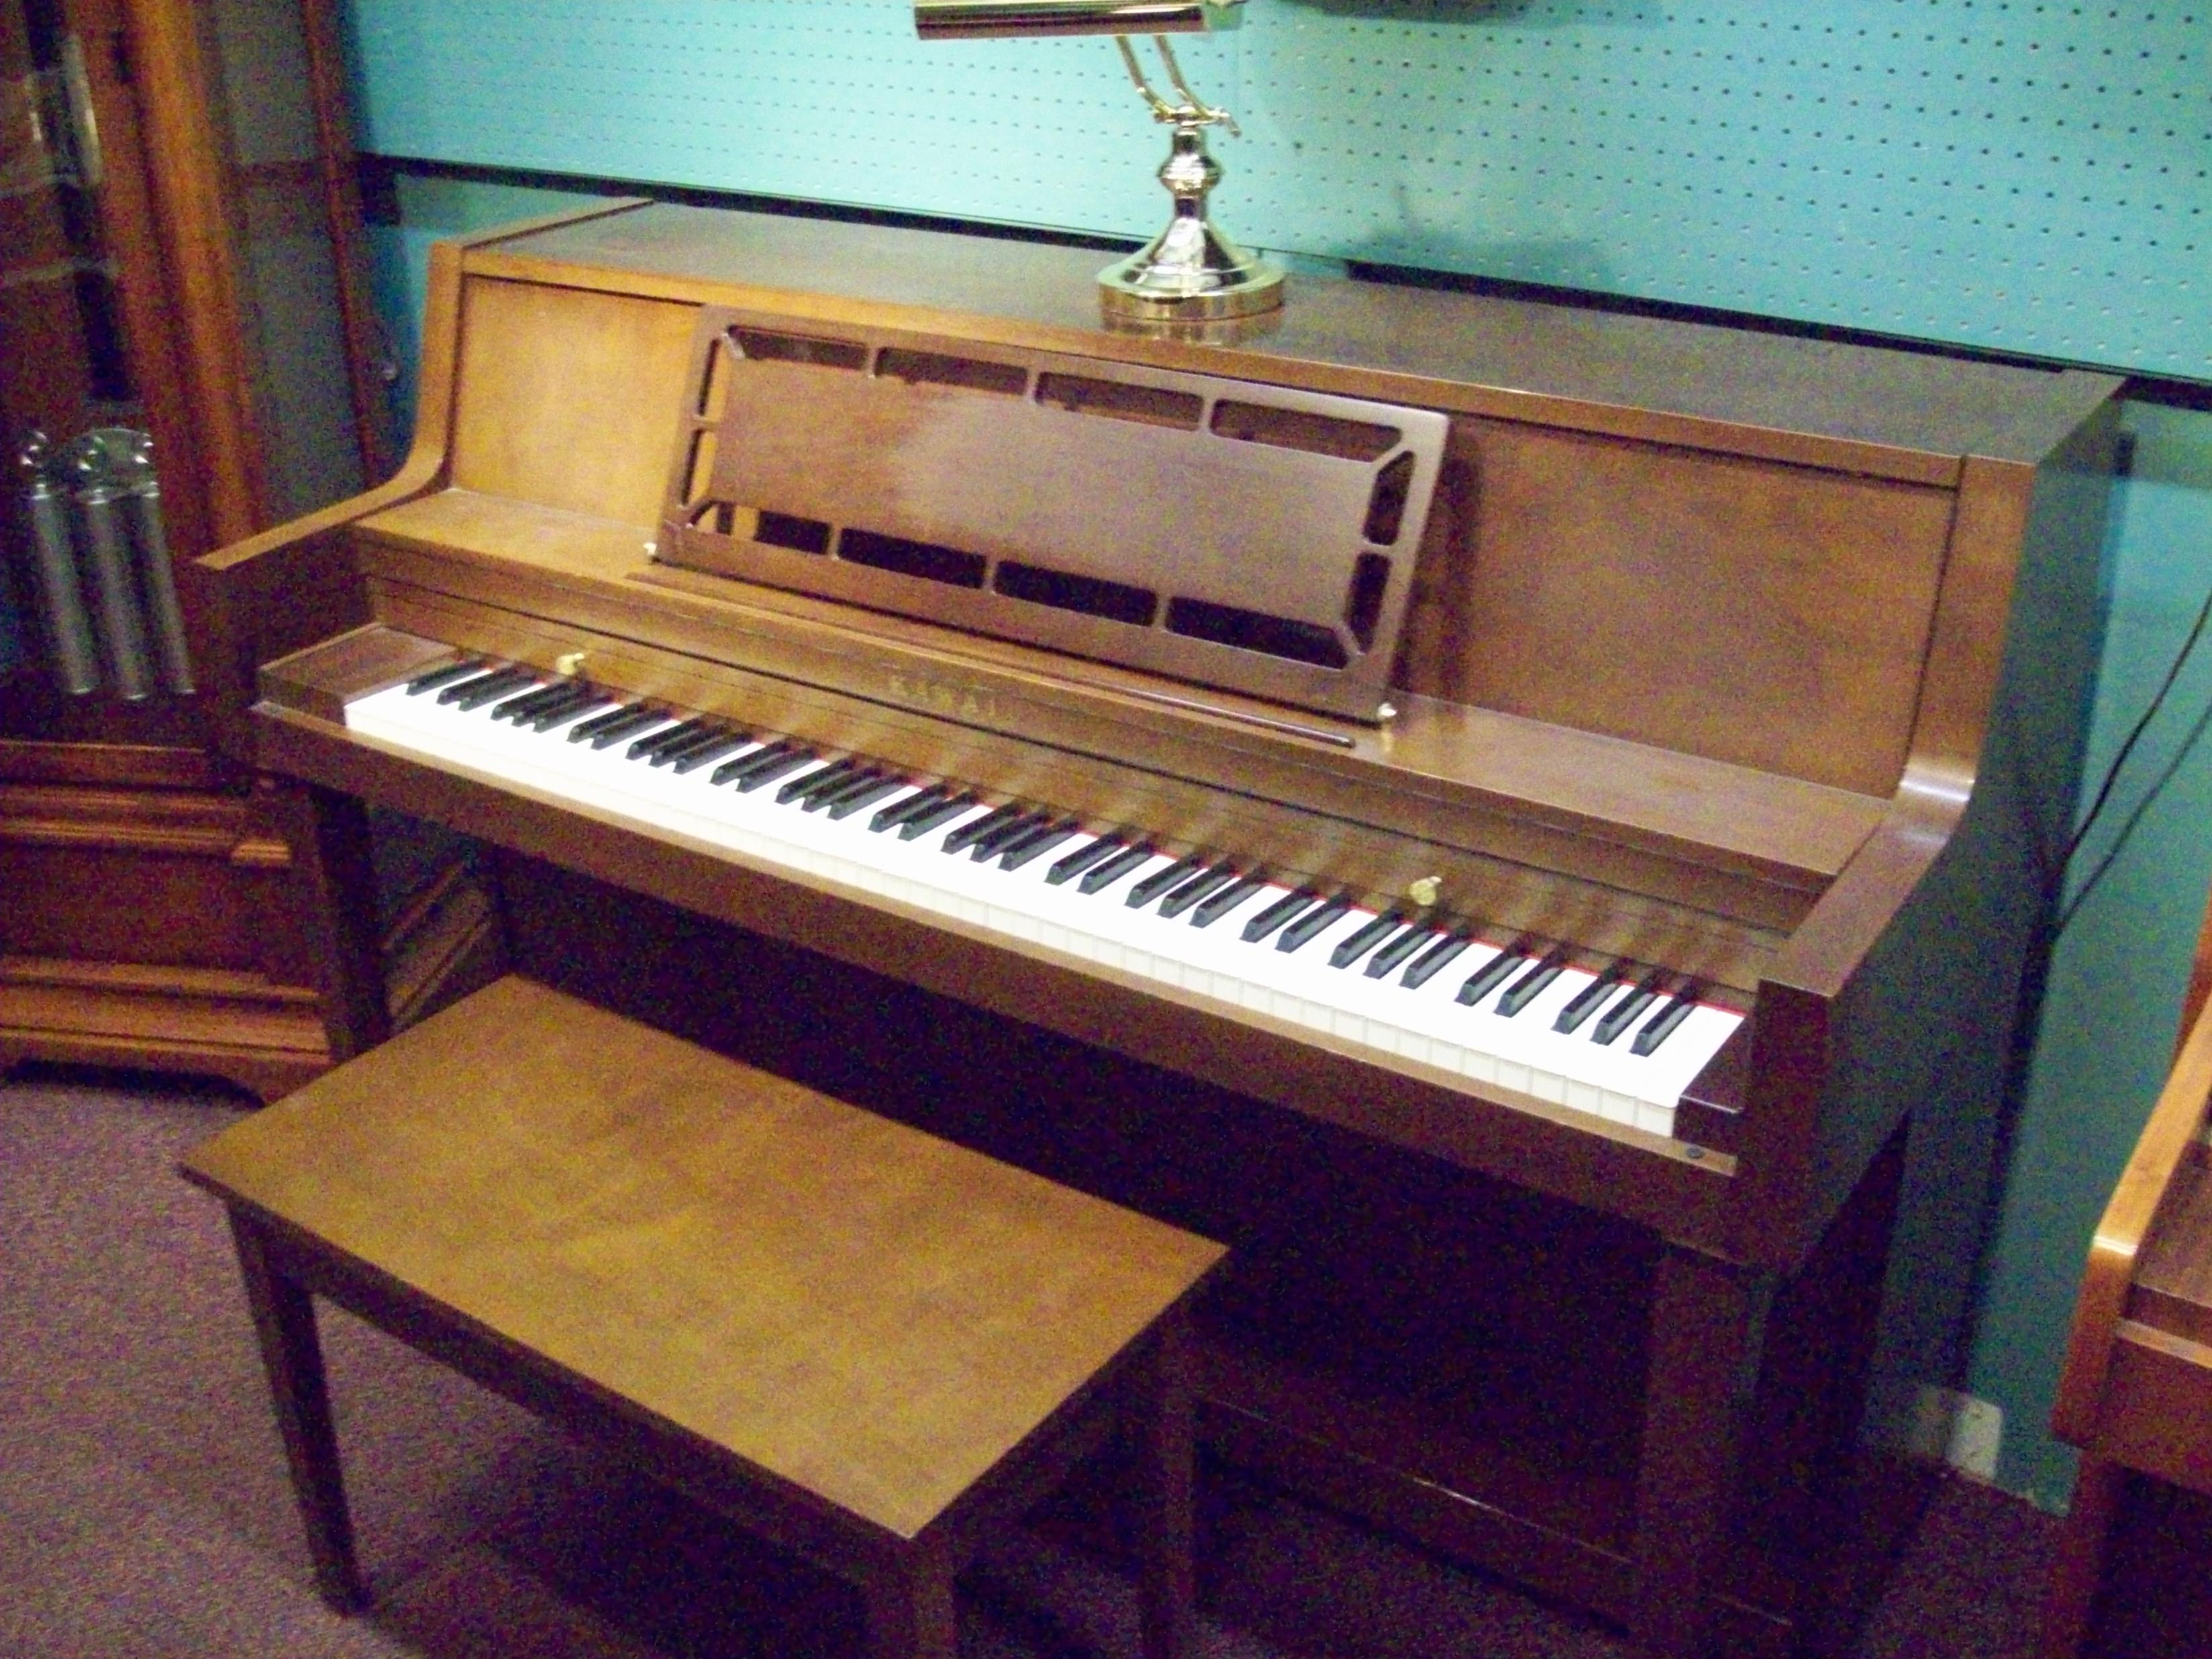 Used pianos grand upright telep pianos oshawa 905 433 1491 for Small grand piano